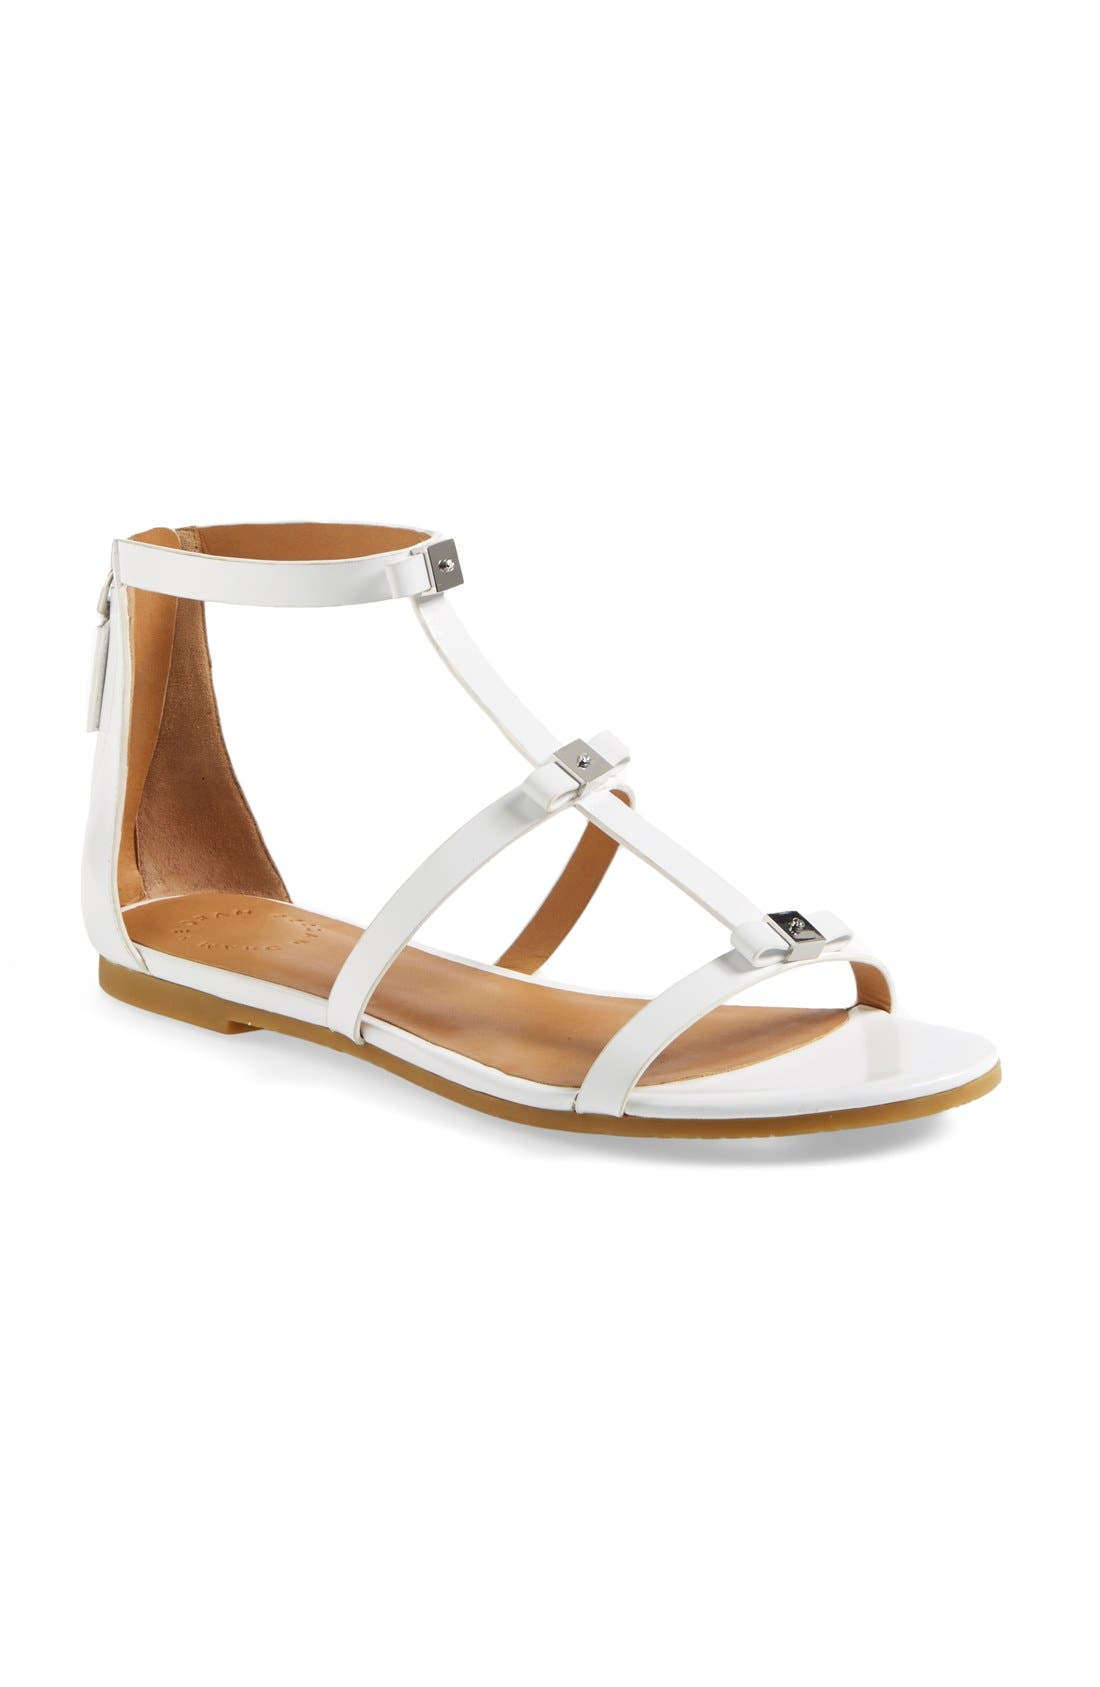 Main Image - MARC BY MARC JACOBS Cube Bow Leather Sandal (Women)